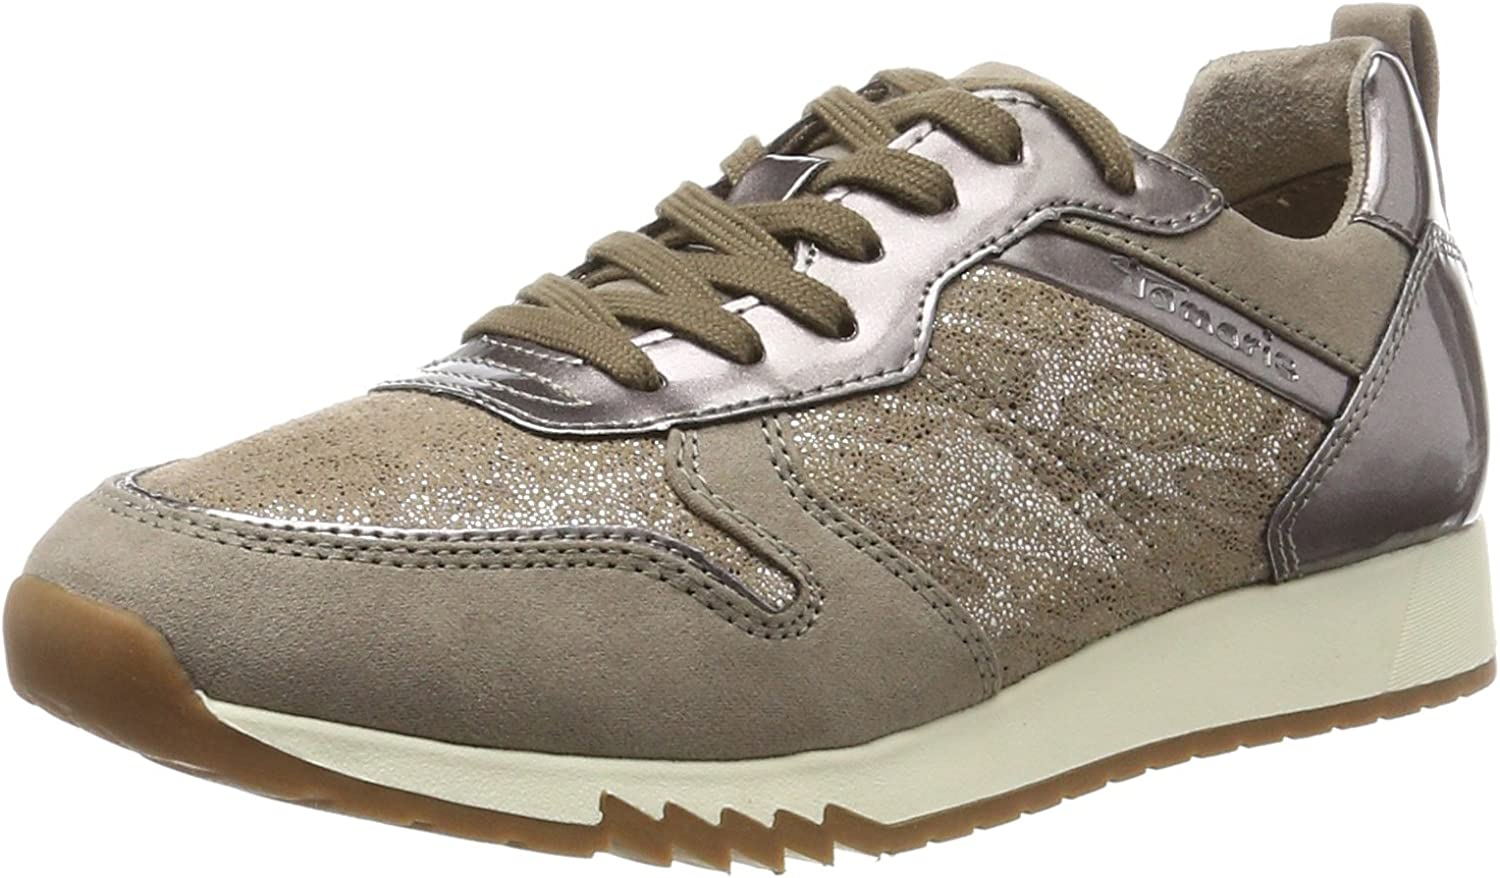 Tamaris 23601, Women's Low-Top Sneakers